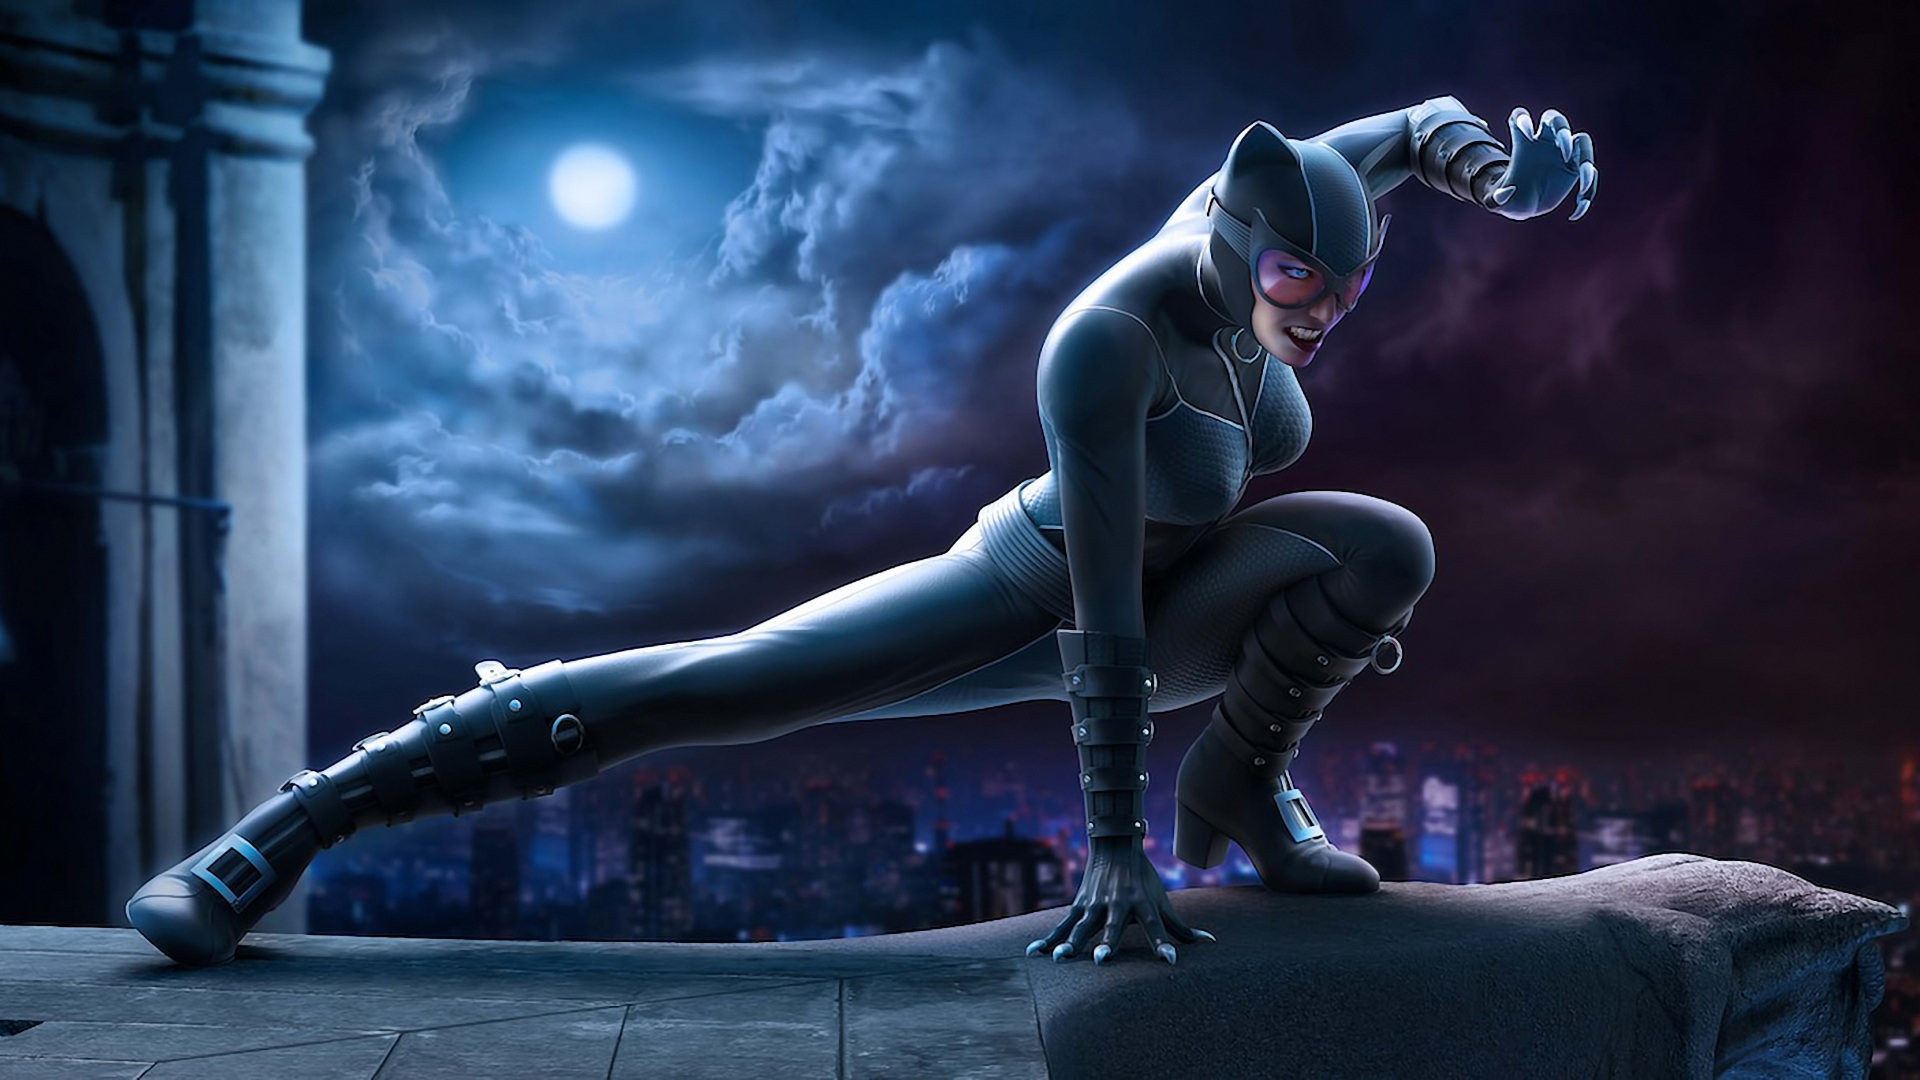 Wallpapers Widescreen Comics Catwoman 1920x1080